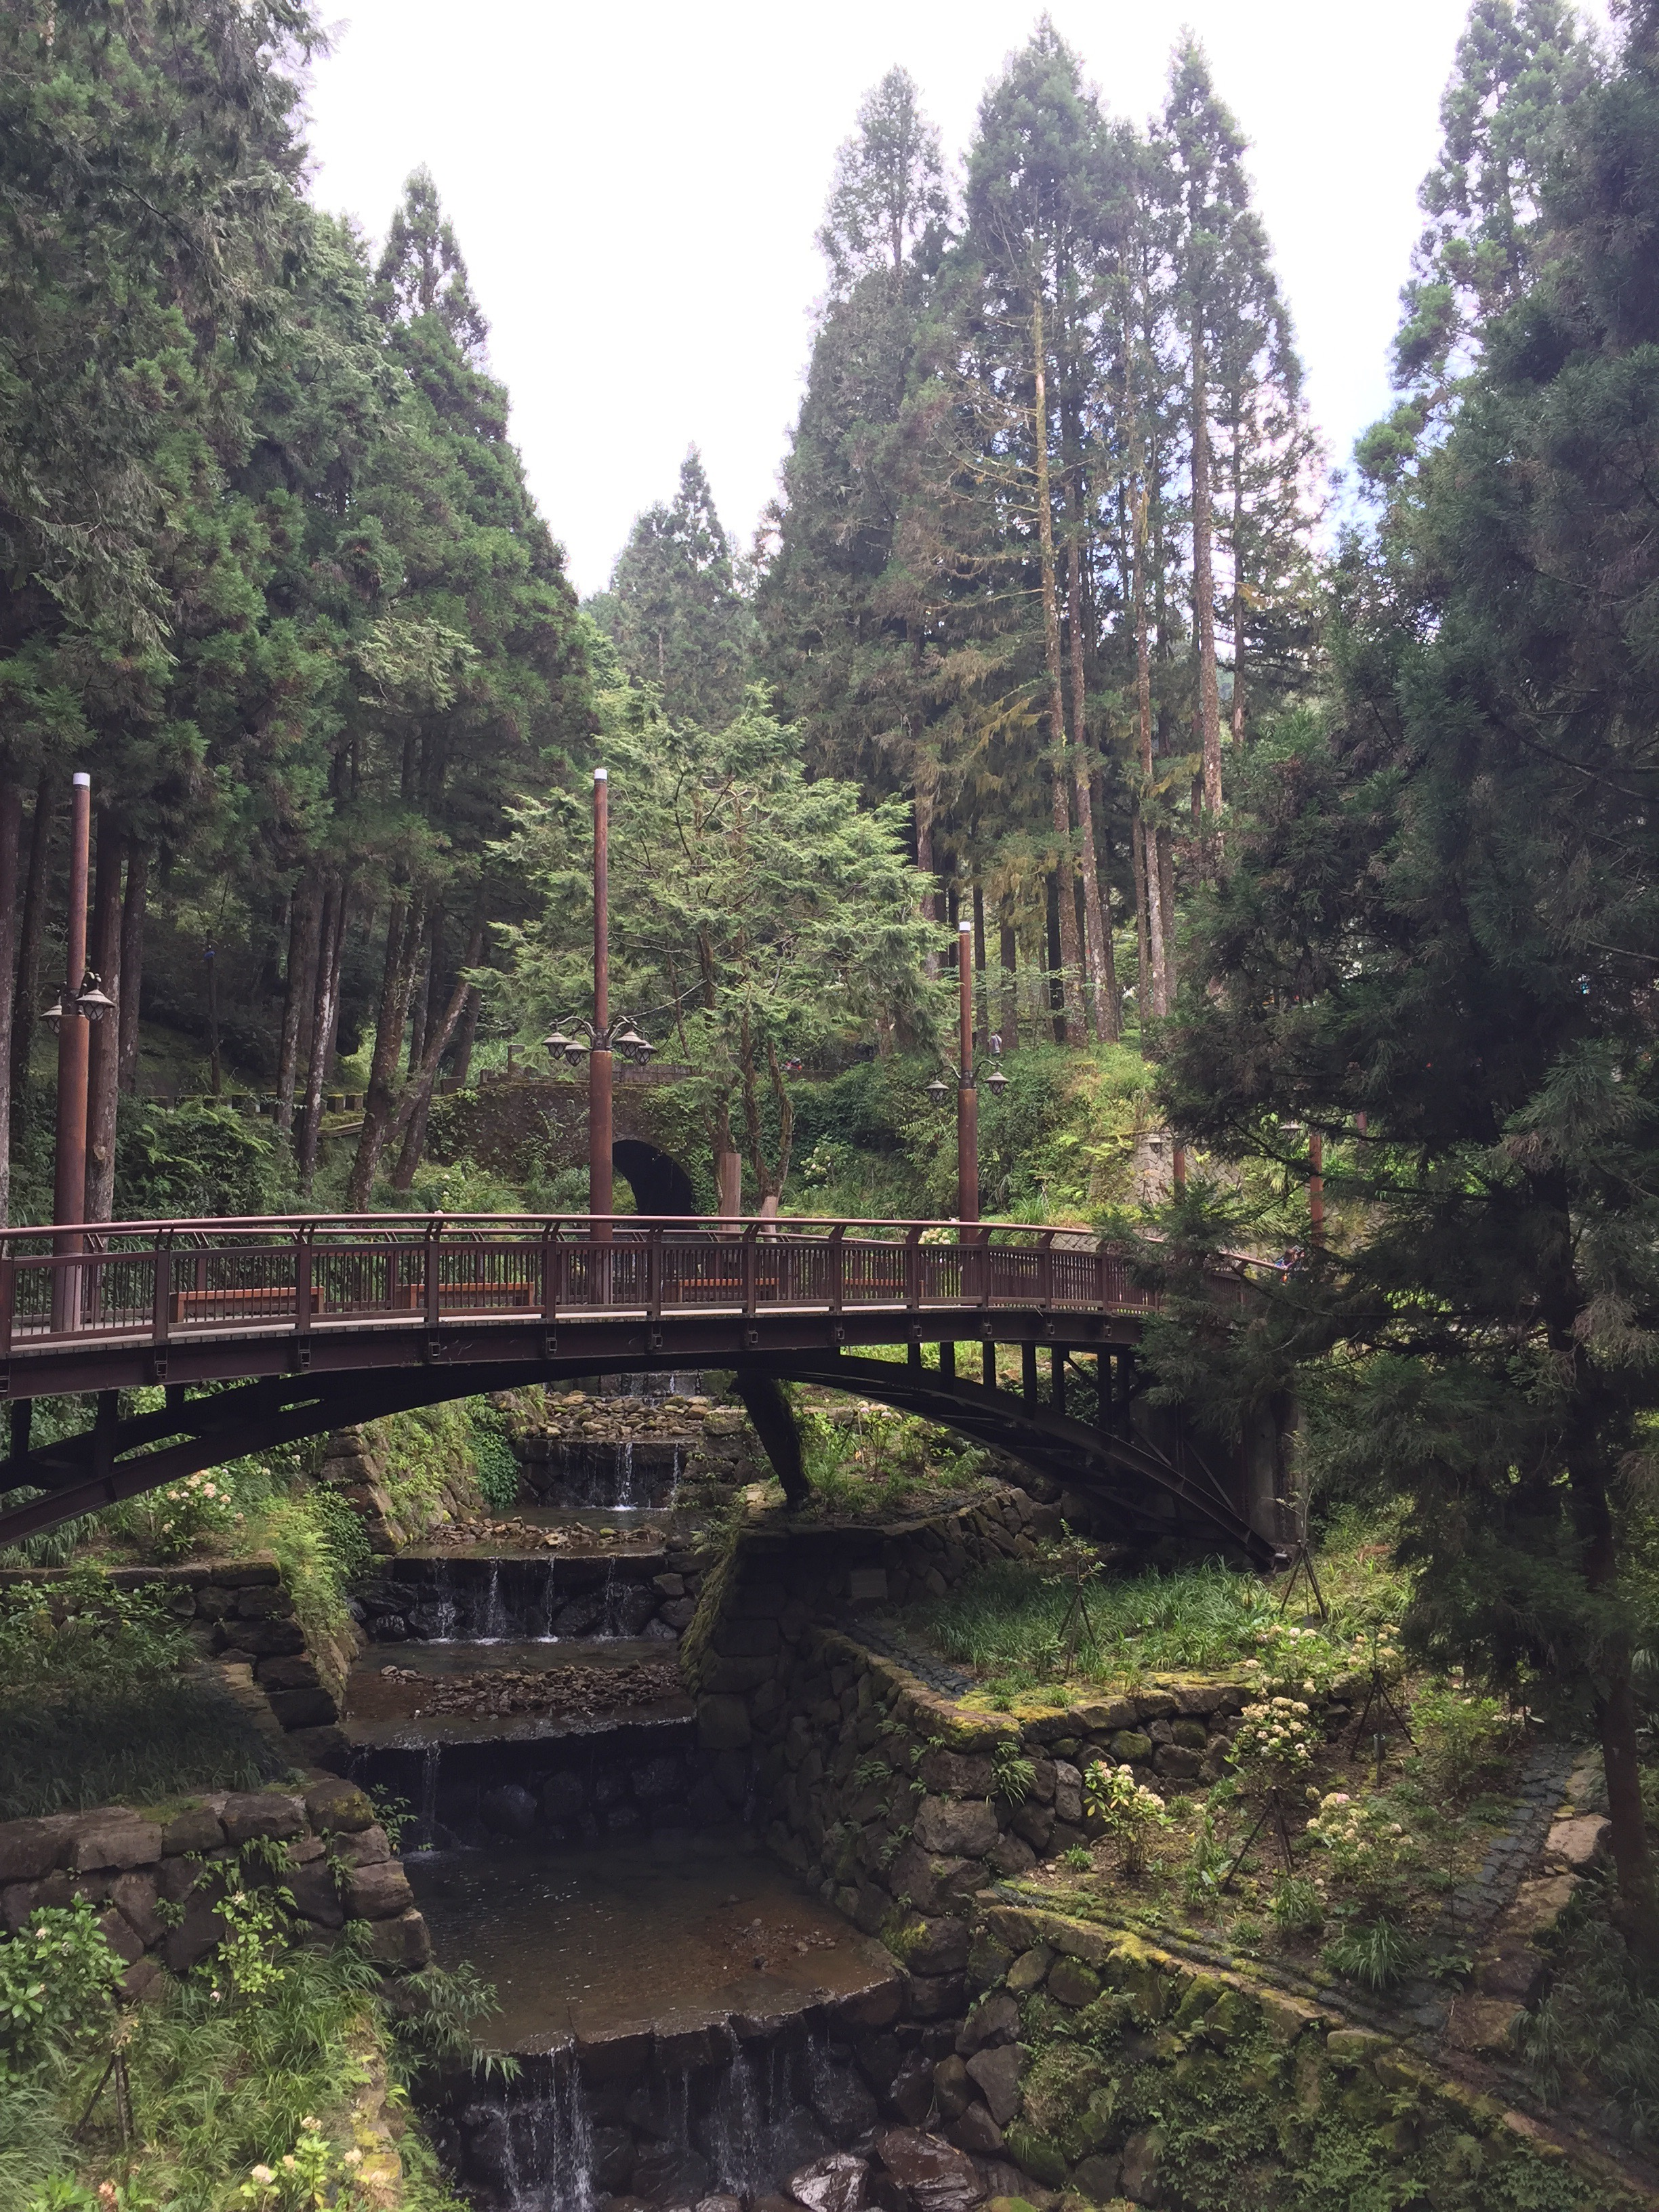 Fenchihu and the Alishan Forest Railway – thisteachertravels